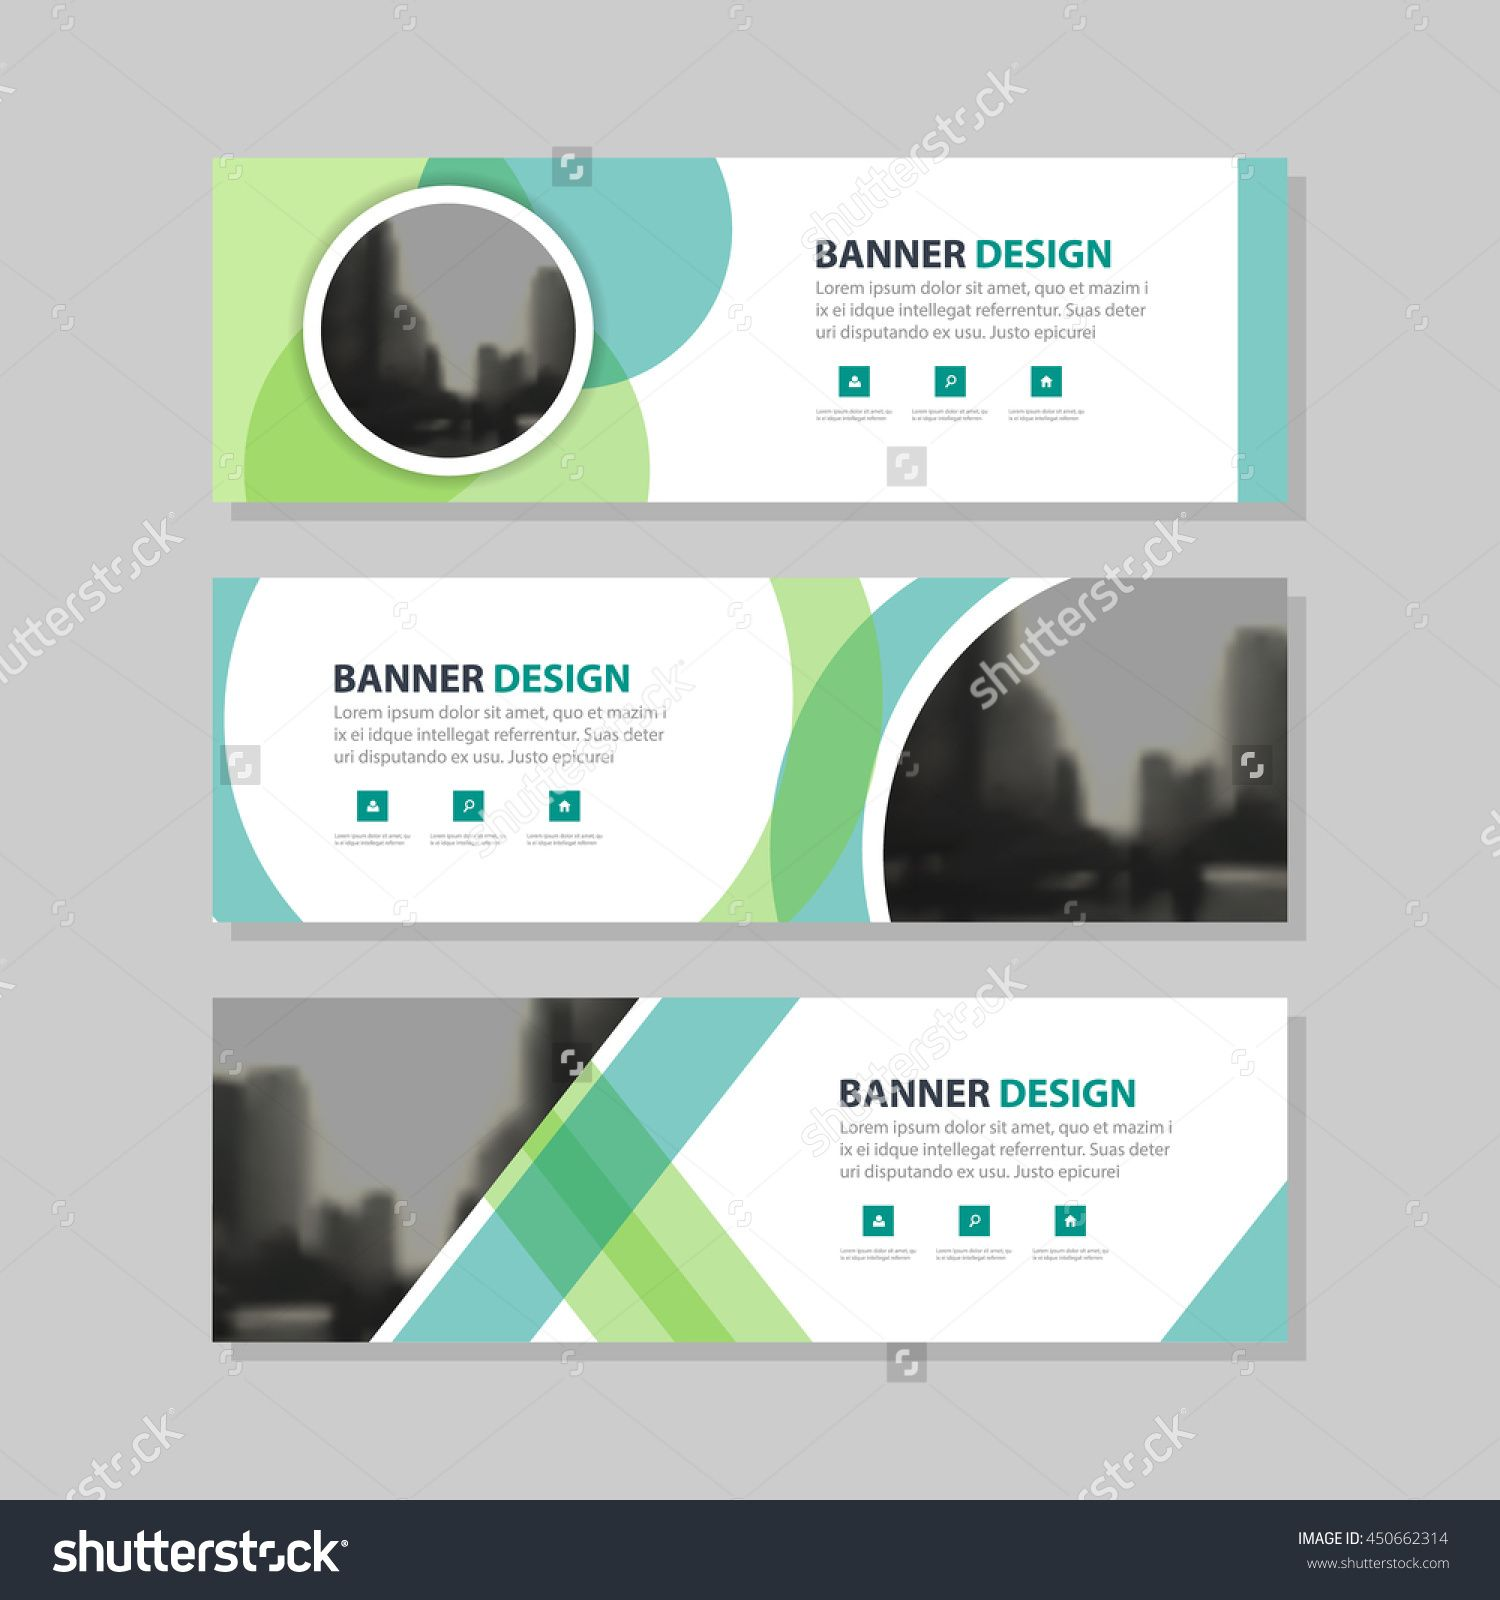 Eco Green Abstract Circle Corporate Business Banner Template Horizontal Advertising Business Banner Design Layout Website Banner Design Banner Template Design